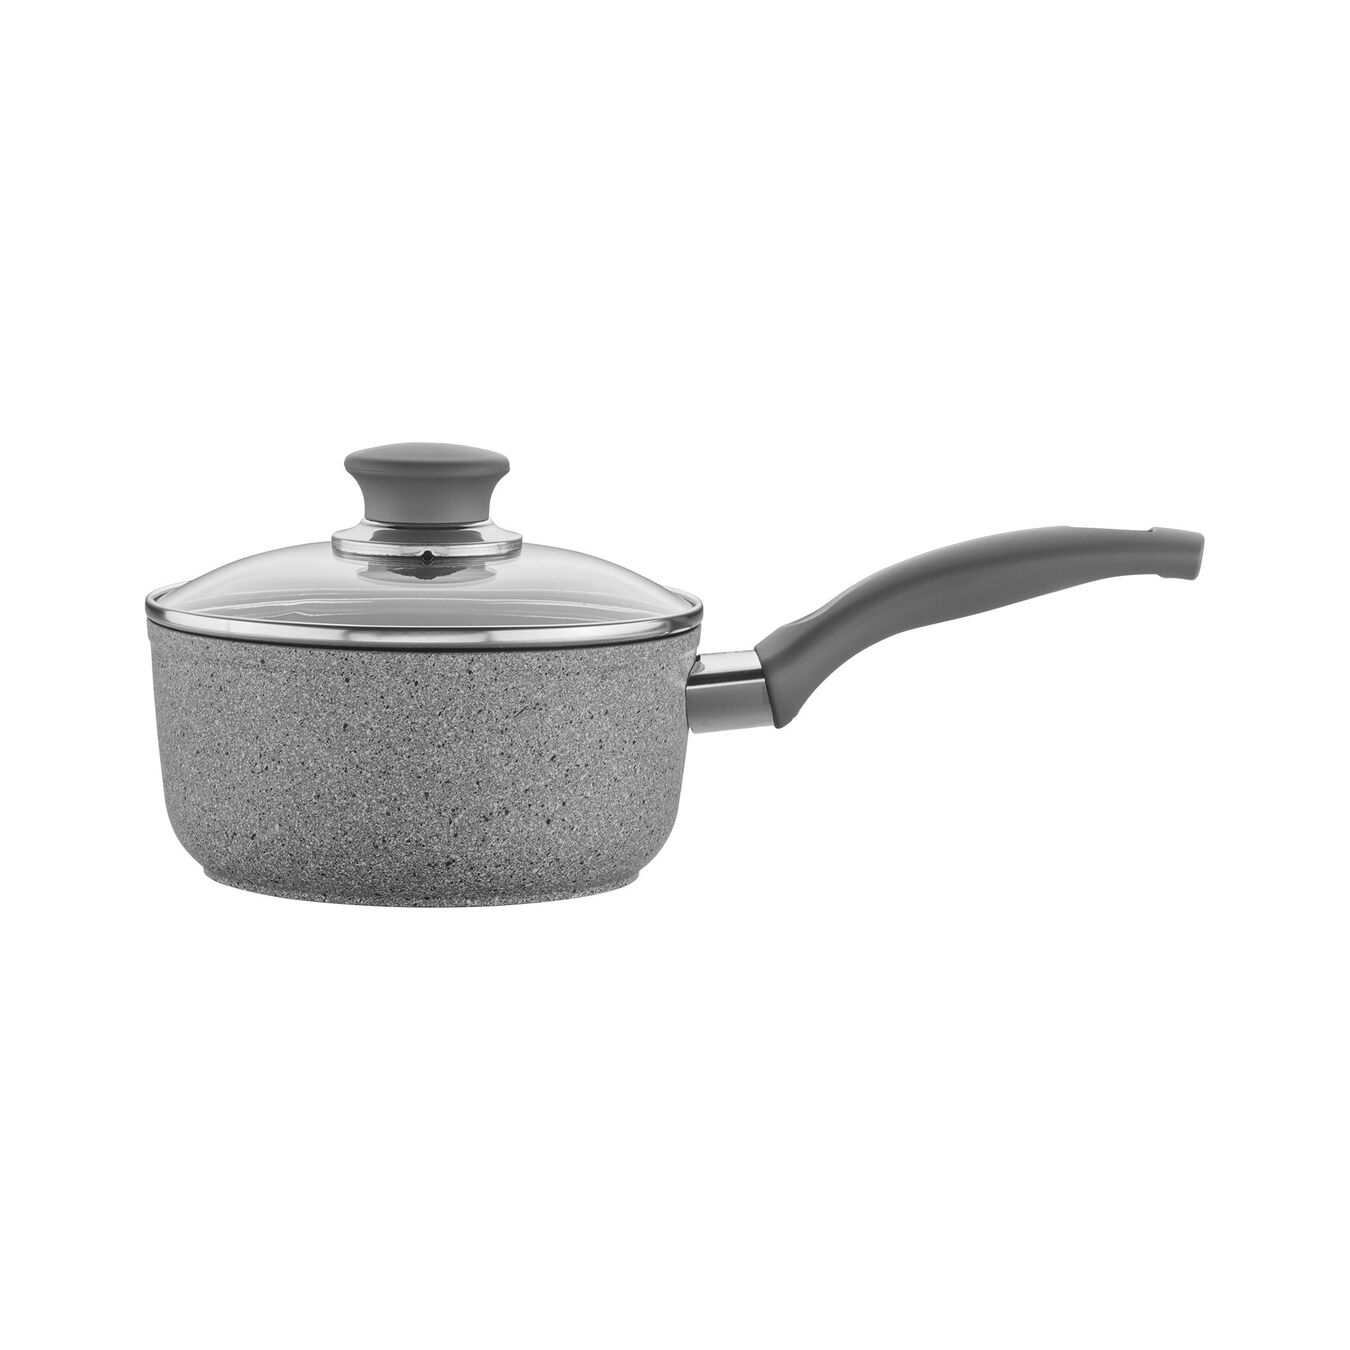 1.5 qt, Sauce pan,,large 1